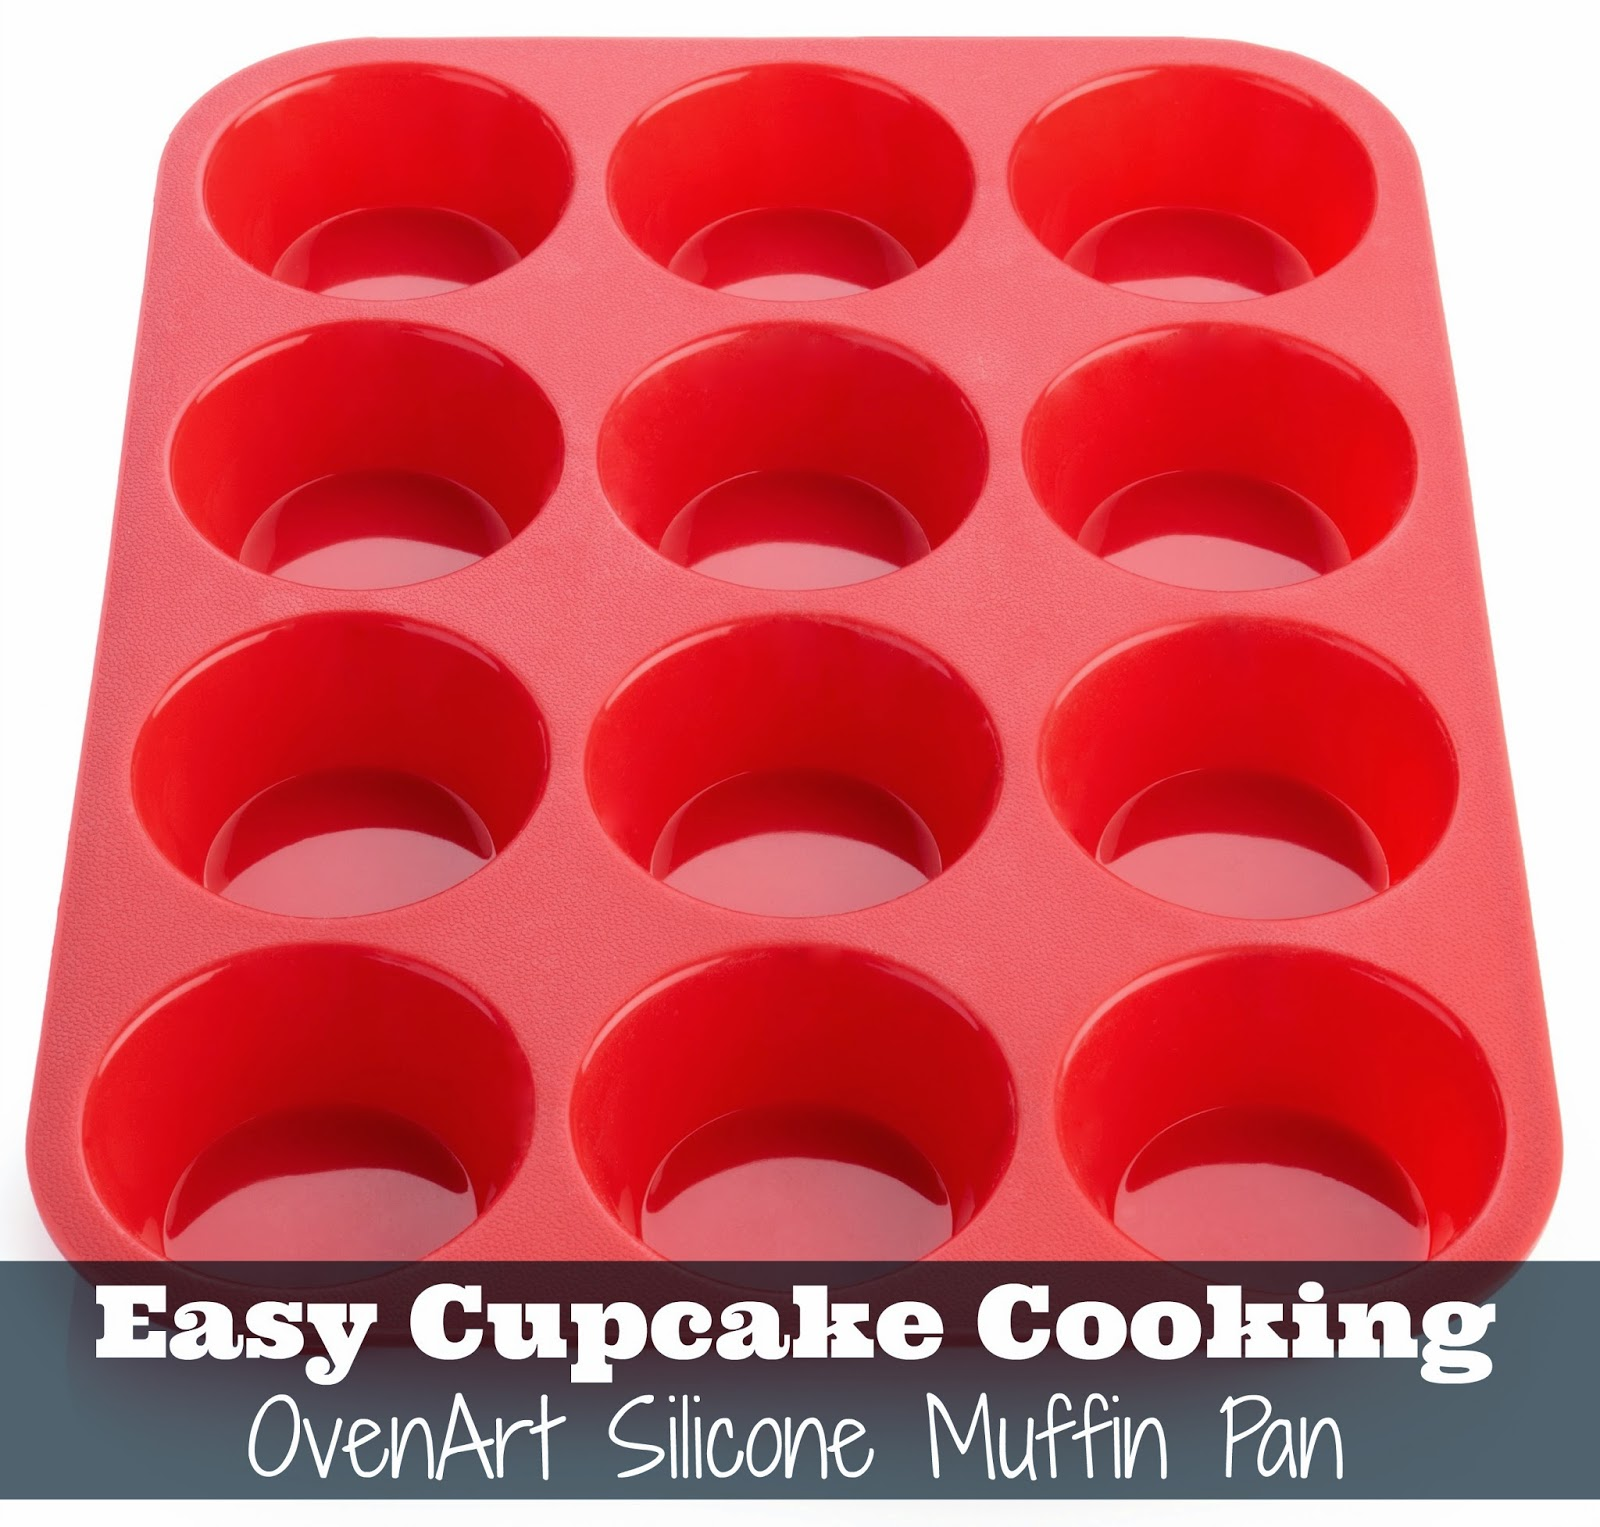 Easy Cupcake Cooking With The Ovenart Silicone Muffin Pan